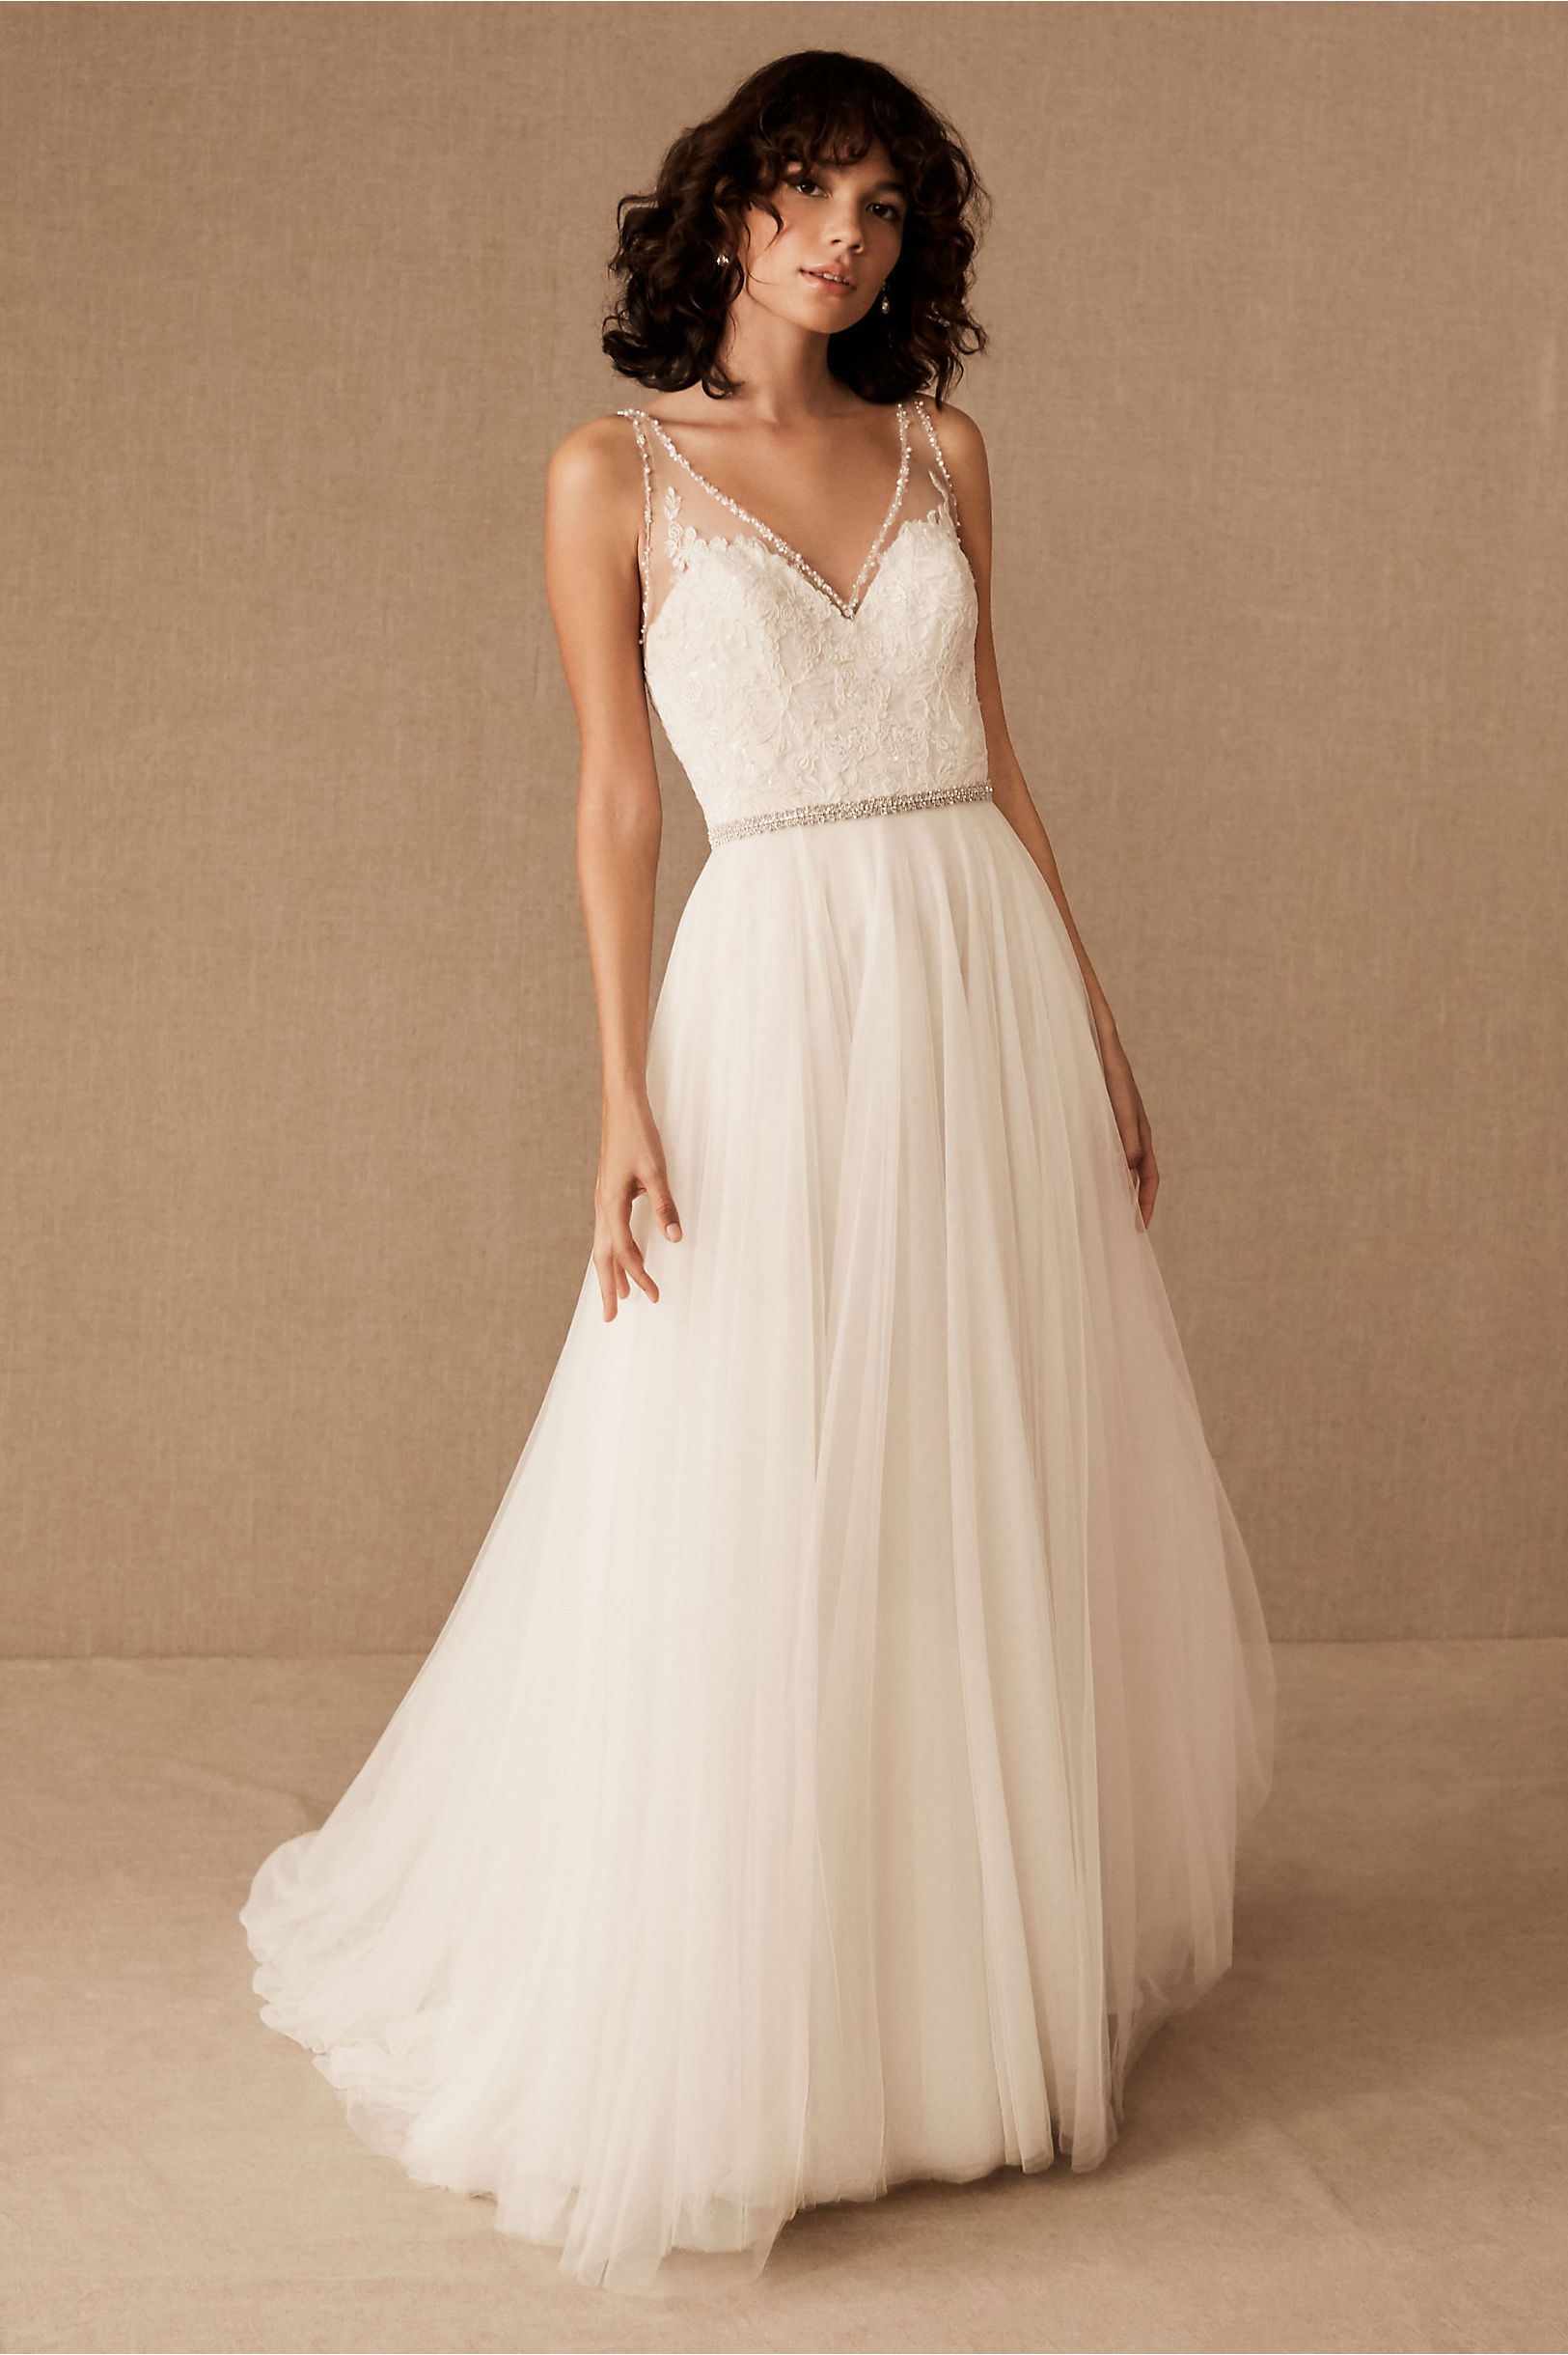 Cassia gown ivorychampagne in bride bhldn ivorychampagne cassia gown bhldn ombrellifo Image collections